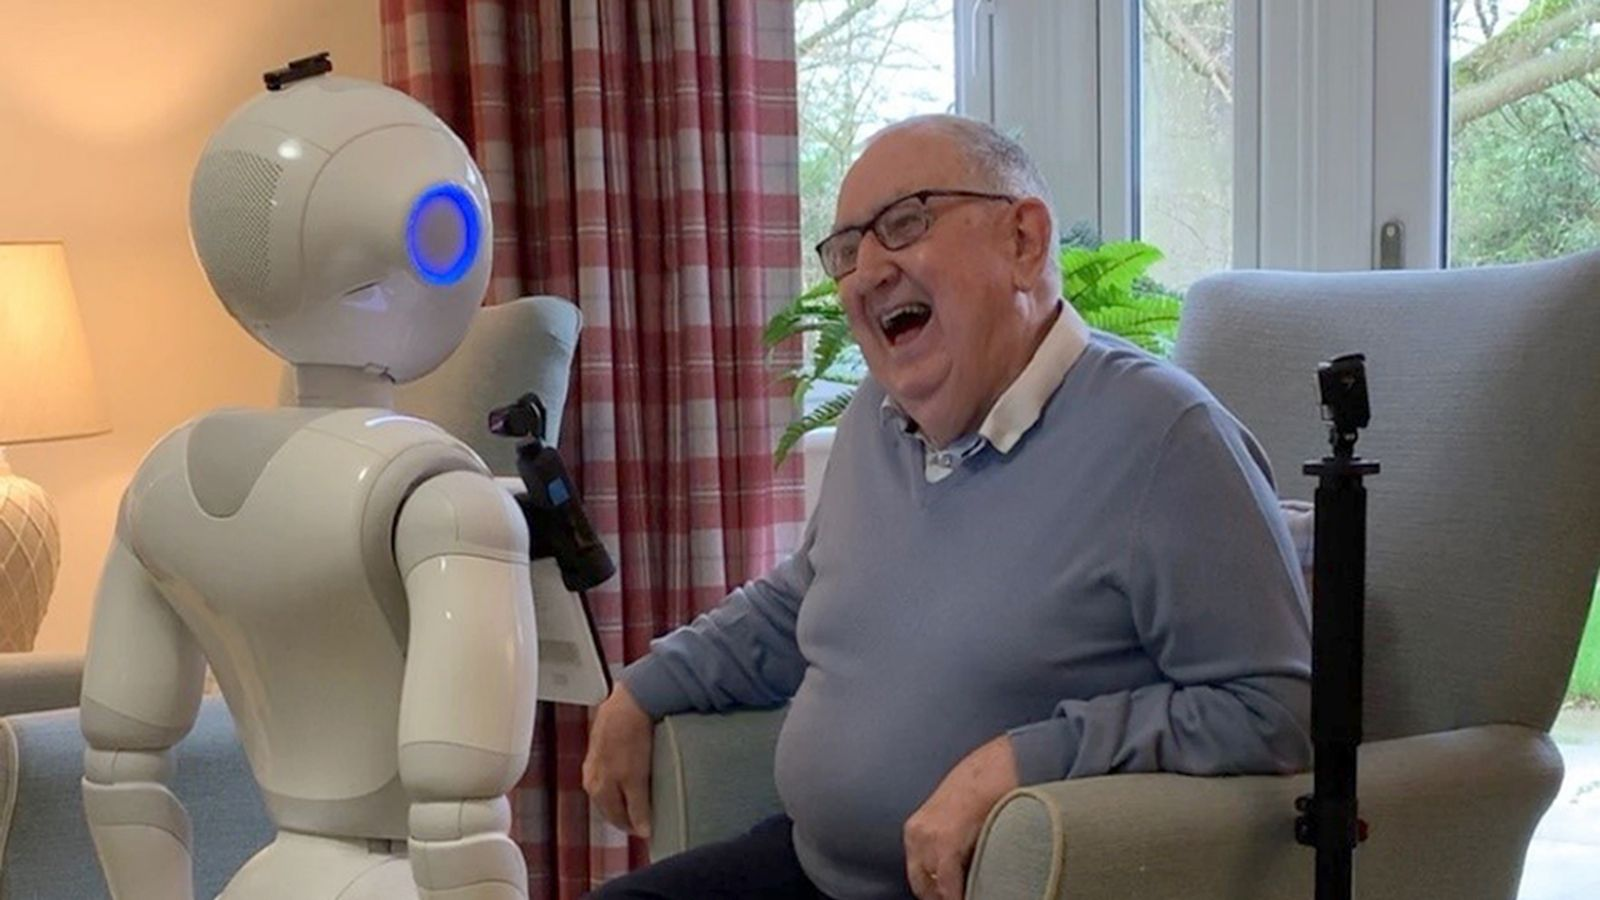 skynews-pepper-robot-care-home_5090092